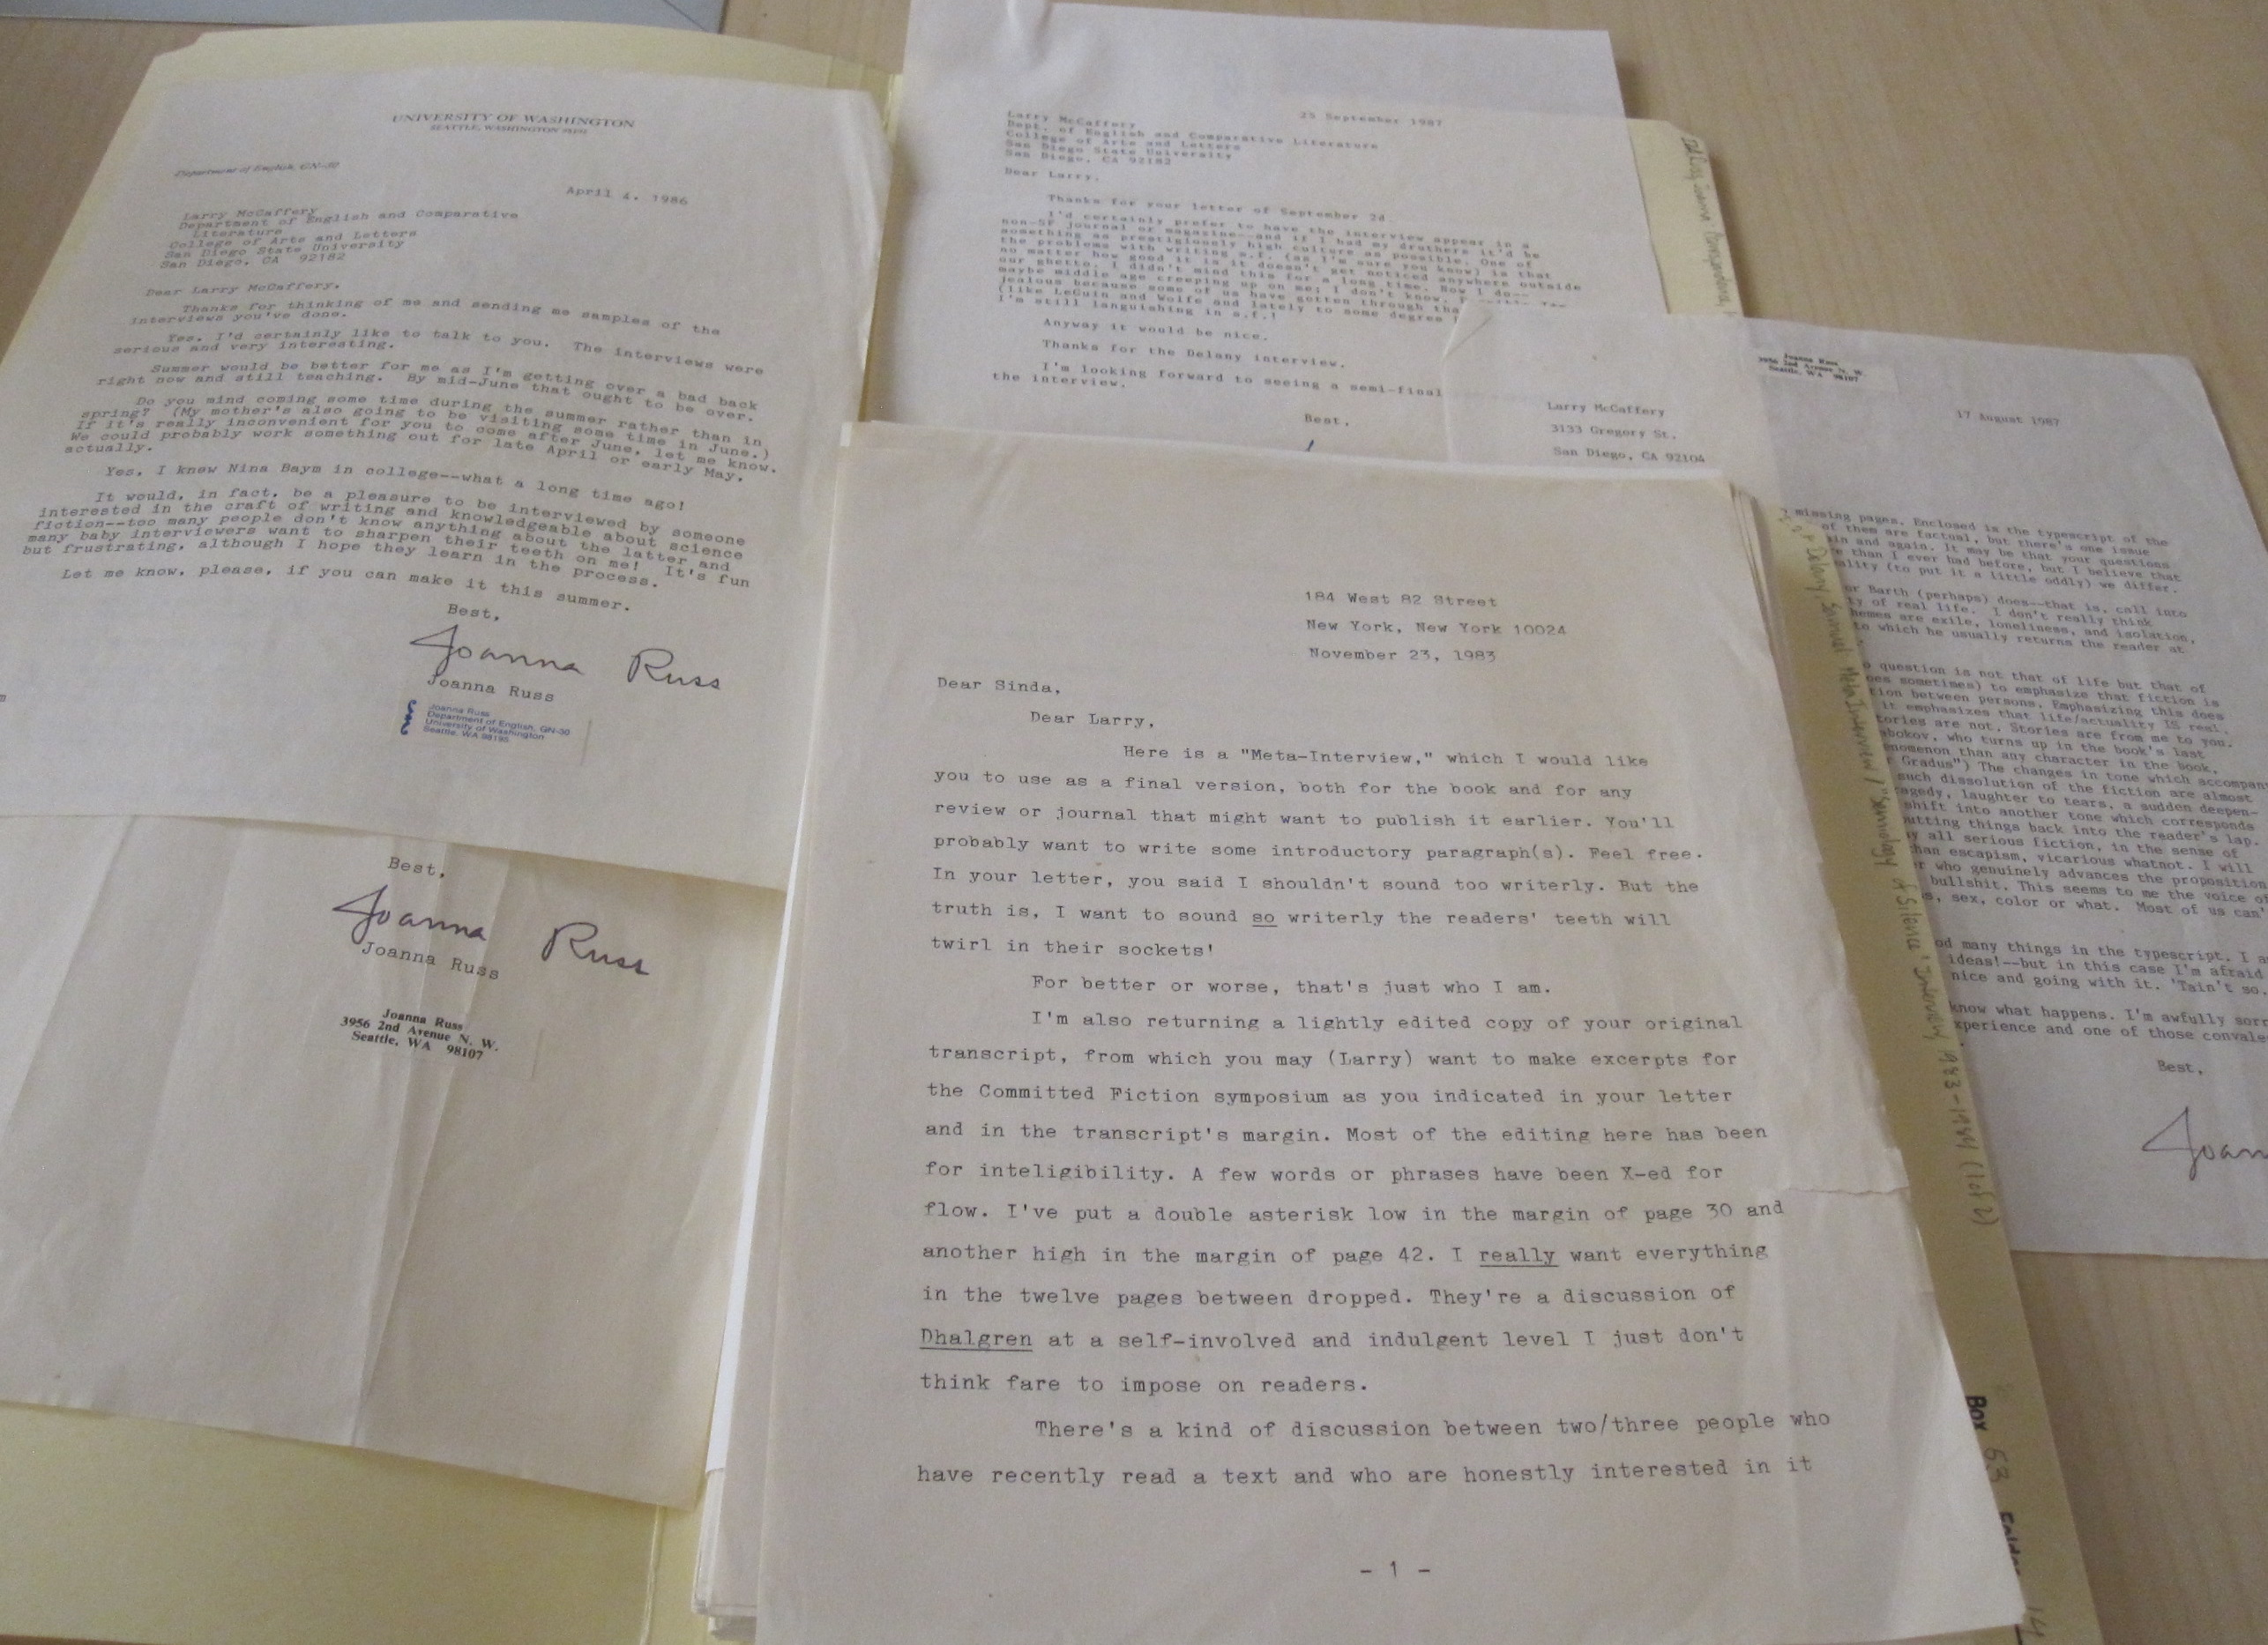 Image 4: Pictured here is correspondence from Joanna Russ and Samuel Delany from the Larry McCaffery Collection.